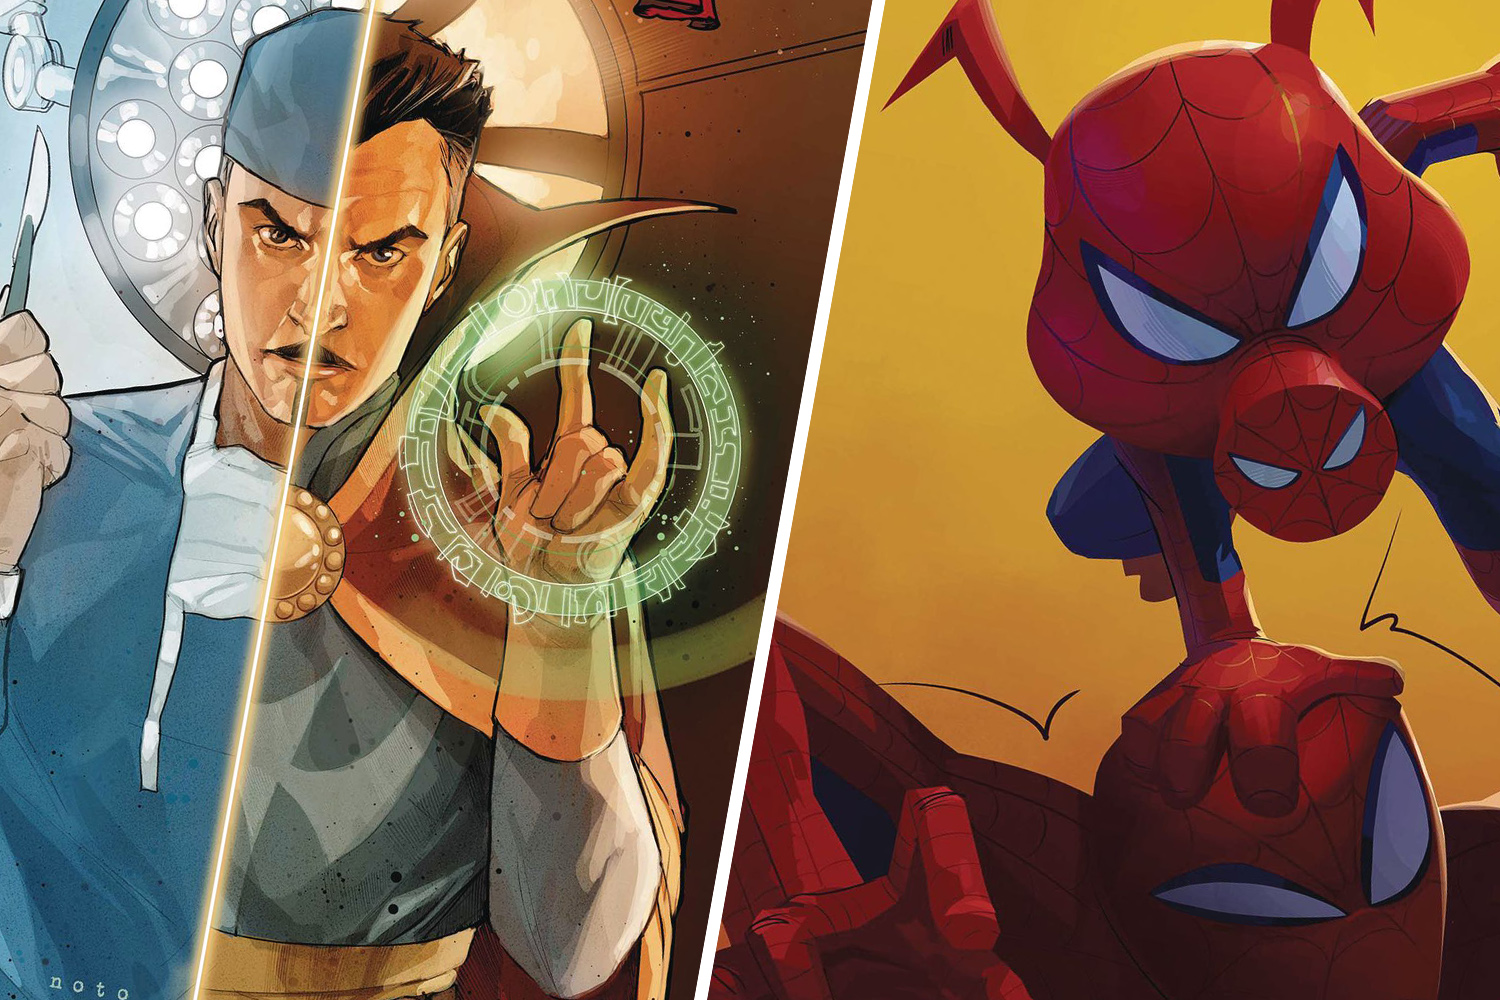 Recapping the week of comics and look ahead to keep you up to date and connected.